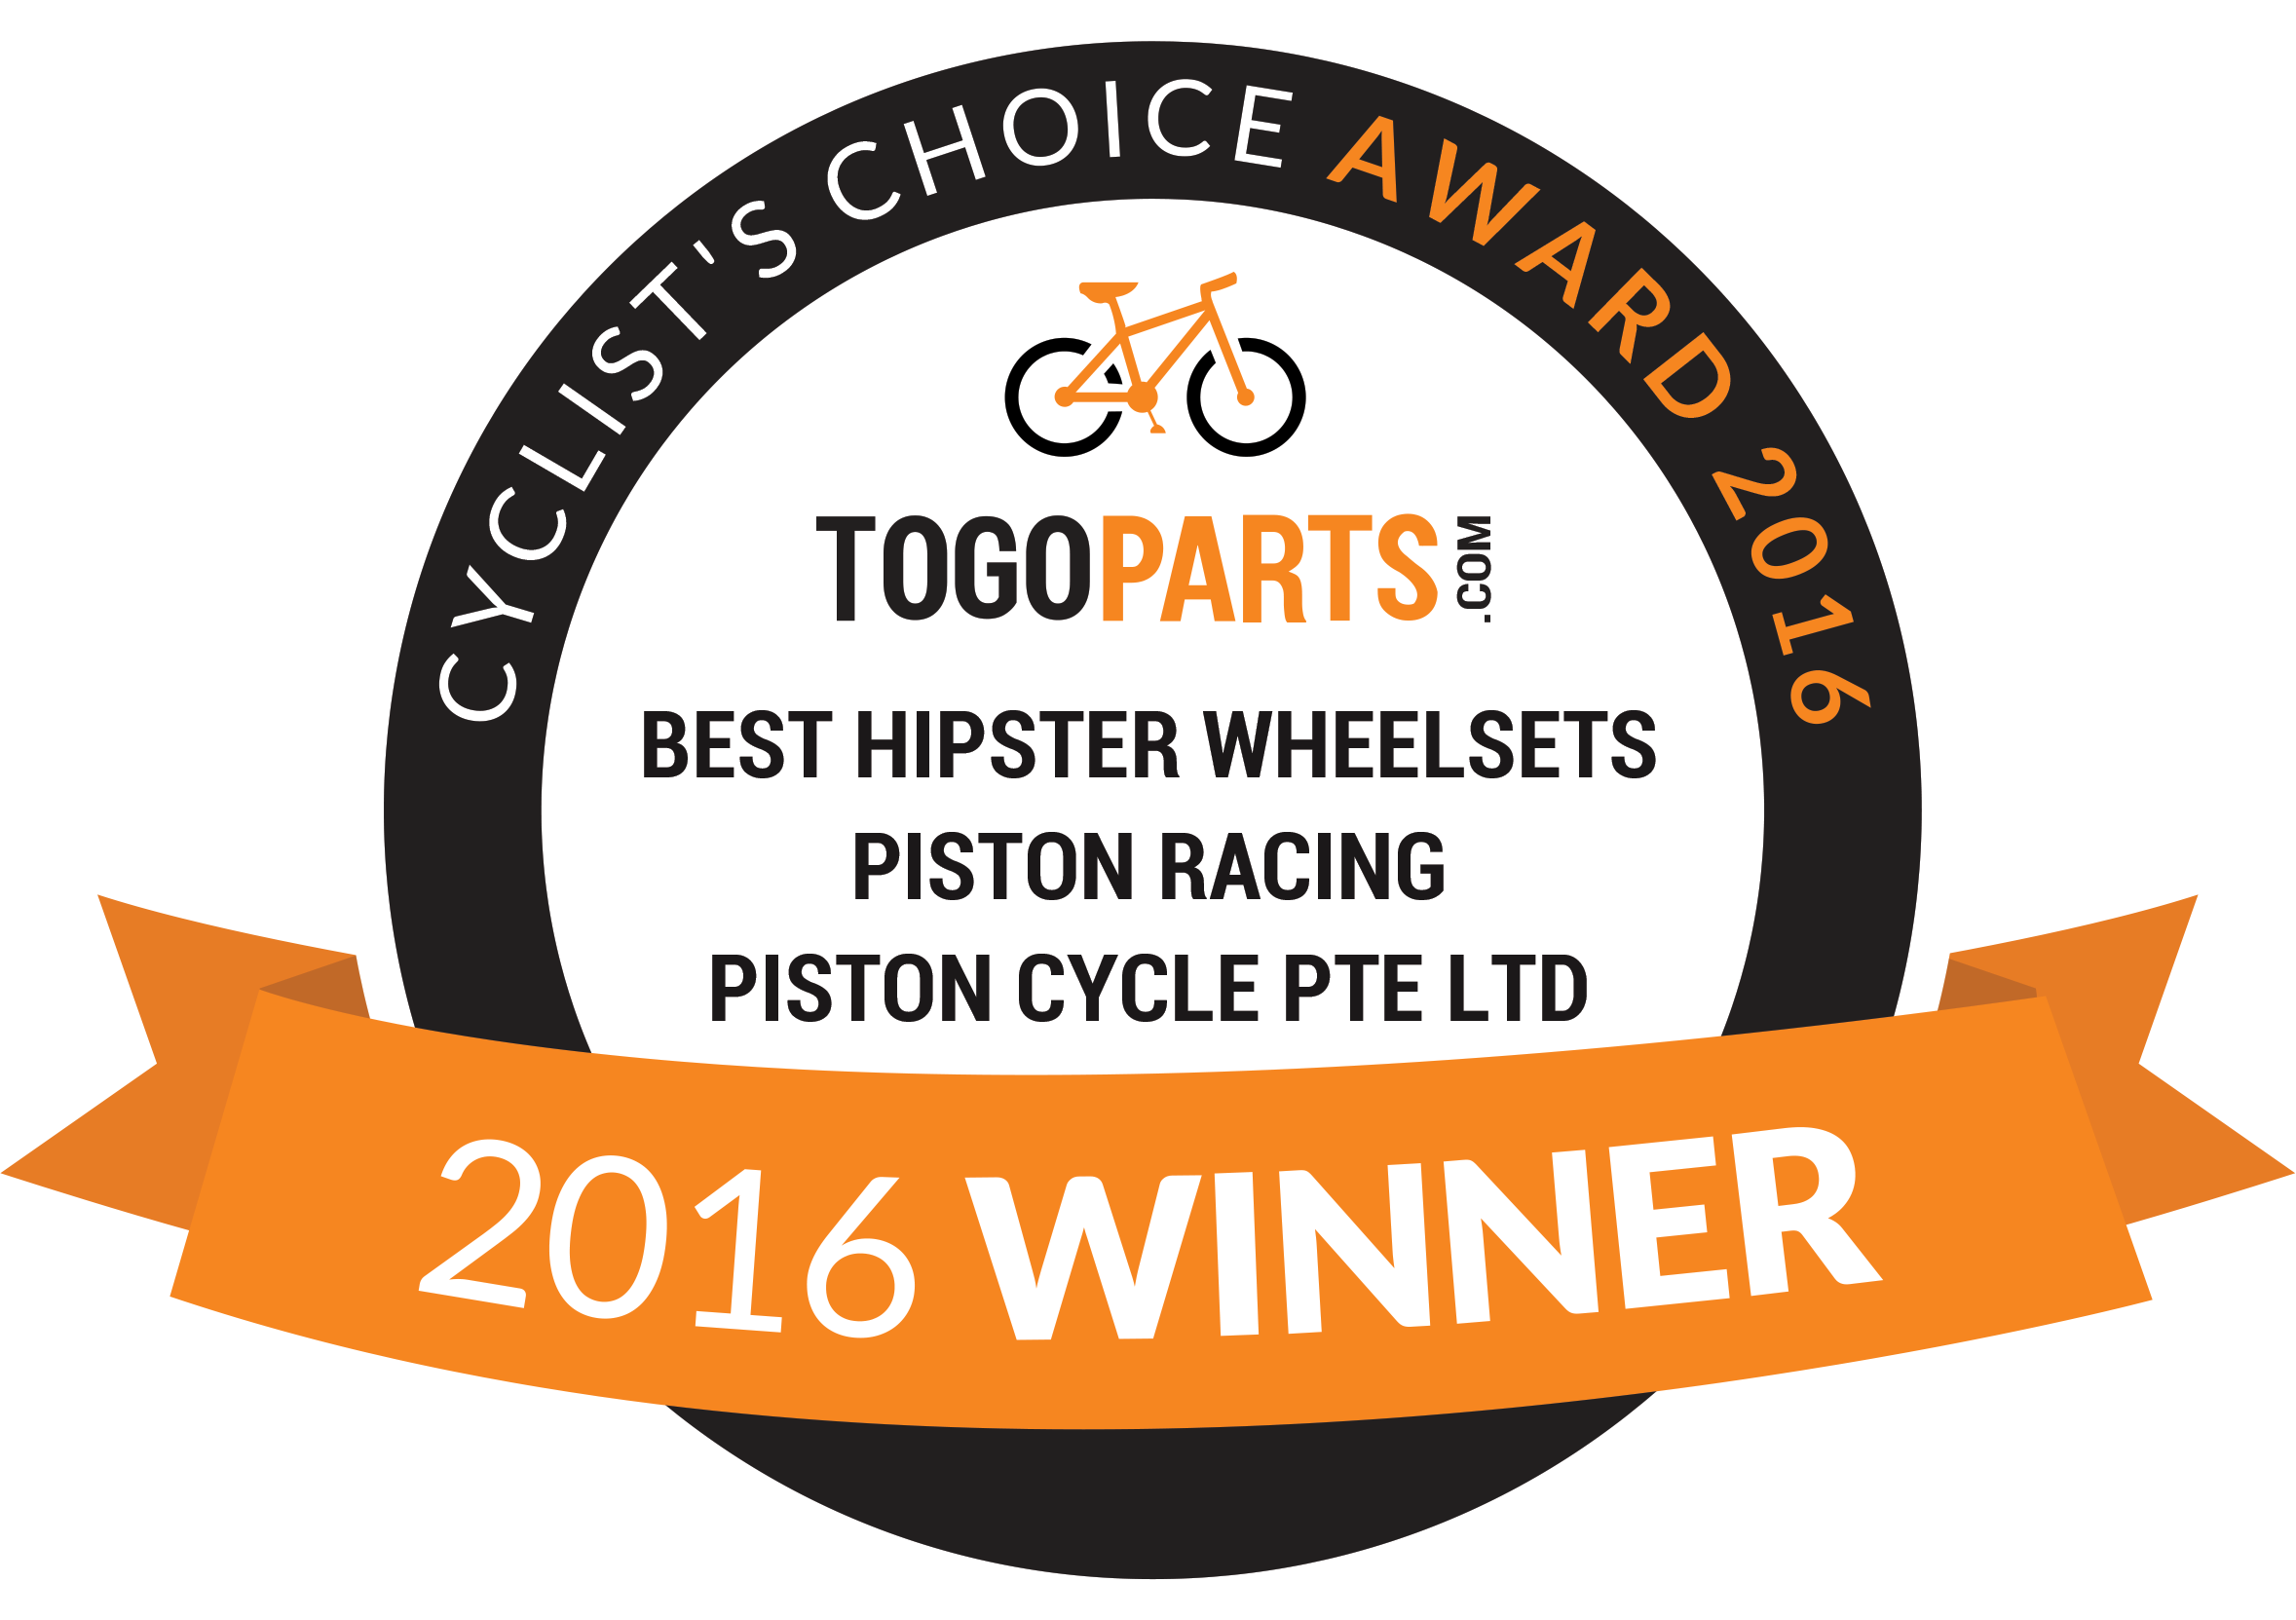 Best Hipster Wheelsets - Piston Racing